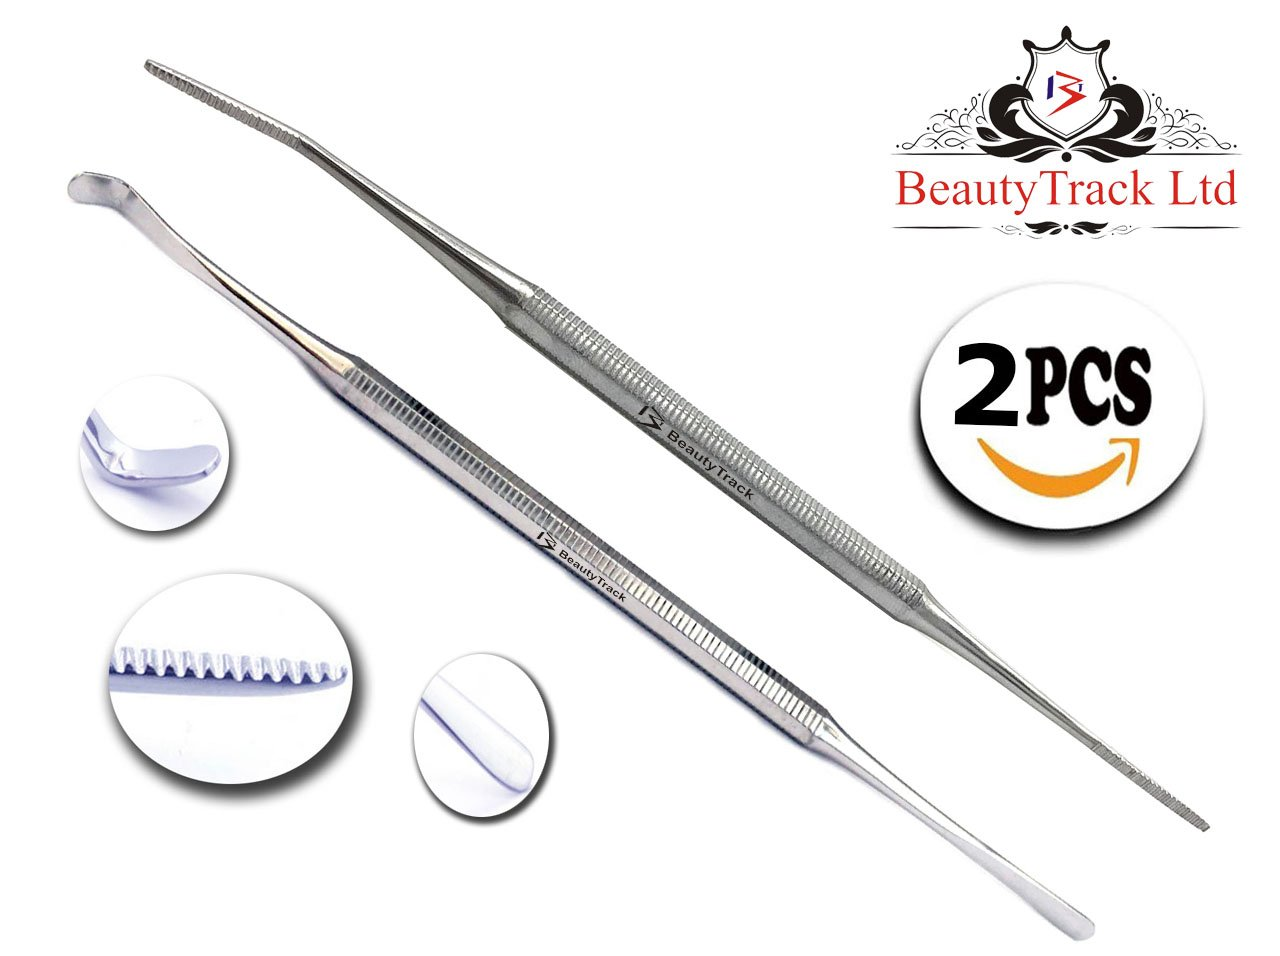 BeautyTrack Satin Edge Ingrown Toe Nail Lifter File Foot Nail Cleaner Podiatry Chiropody Stainless Steel Instruments Rust Free (Pack of 2) Nail Files - Medical Grade Hand made Foot Care Tools